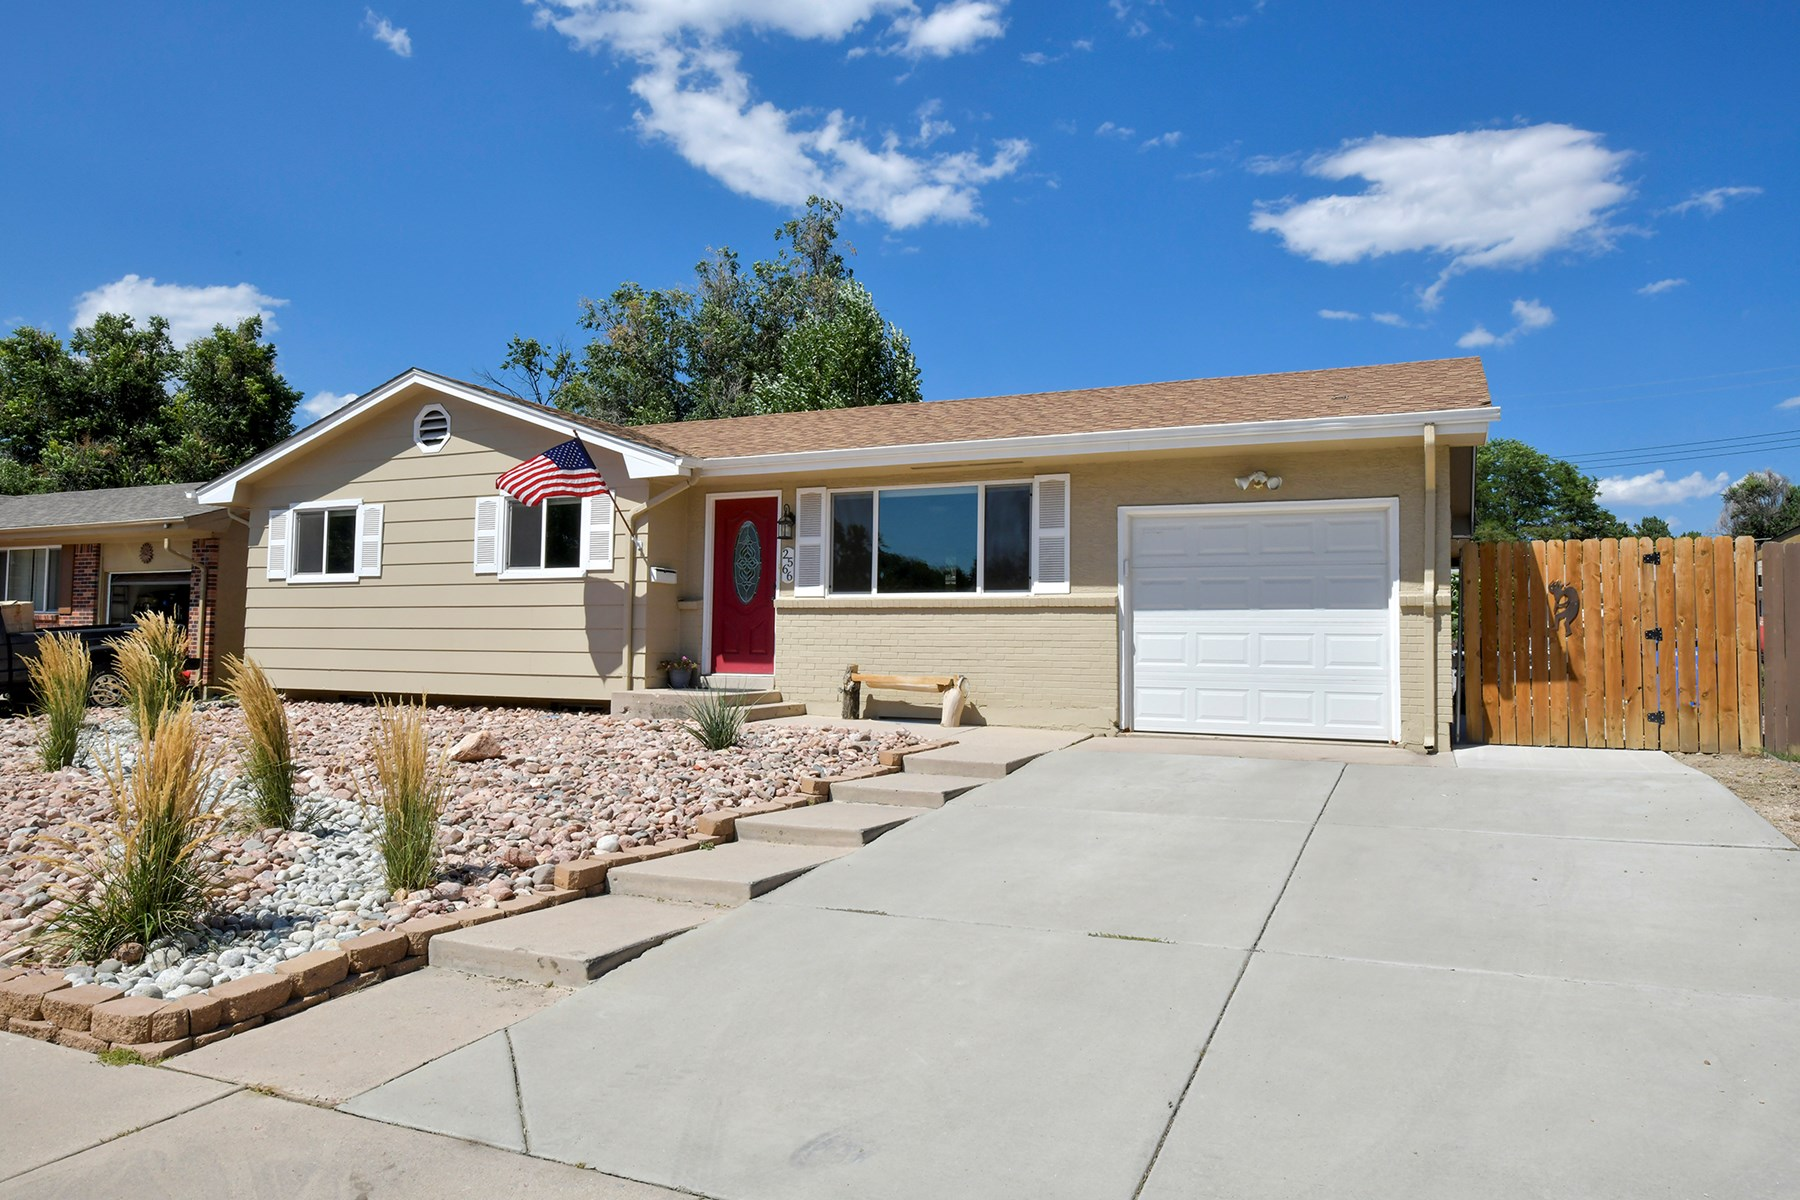 Home for Sale in Central Colorado Springs